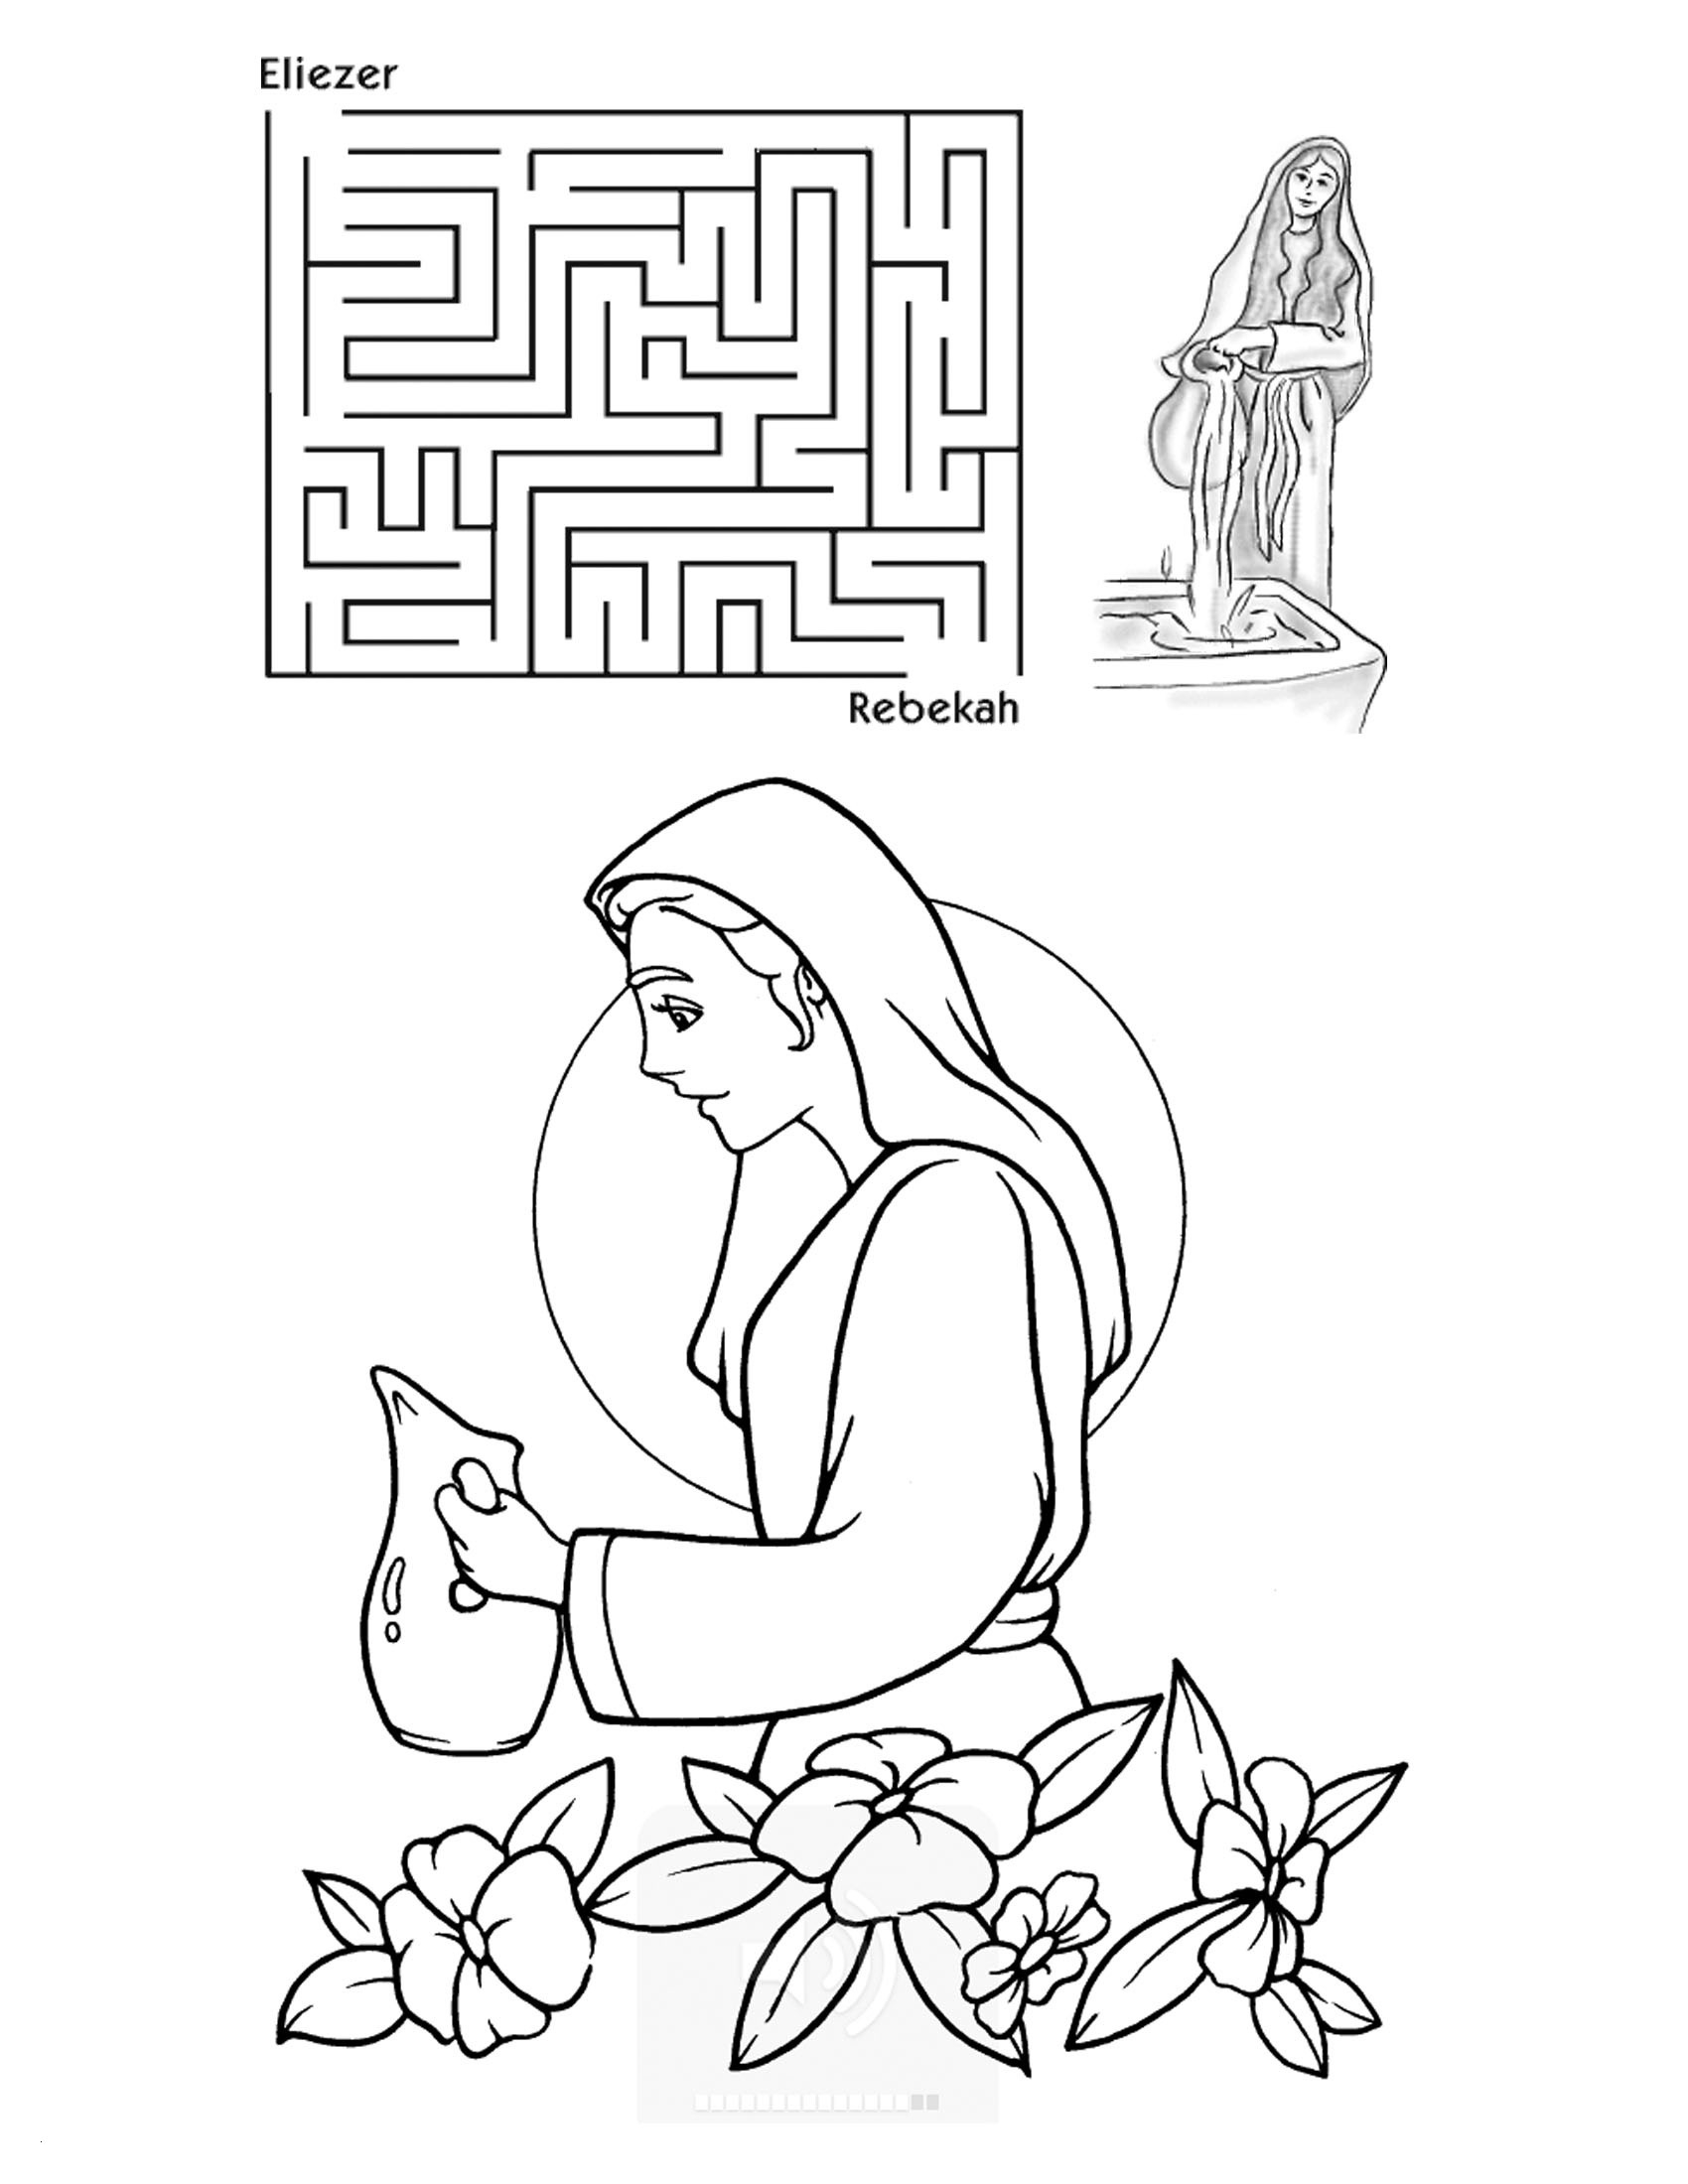 Cain And Abel Coloring Pages To Print